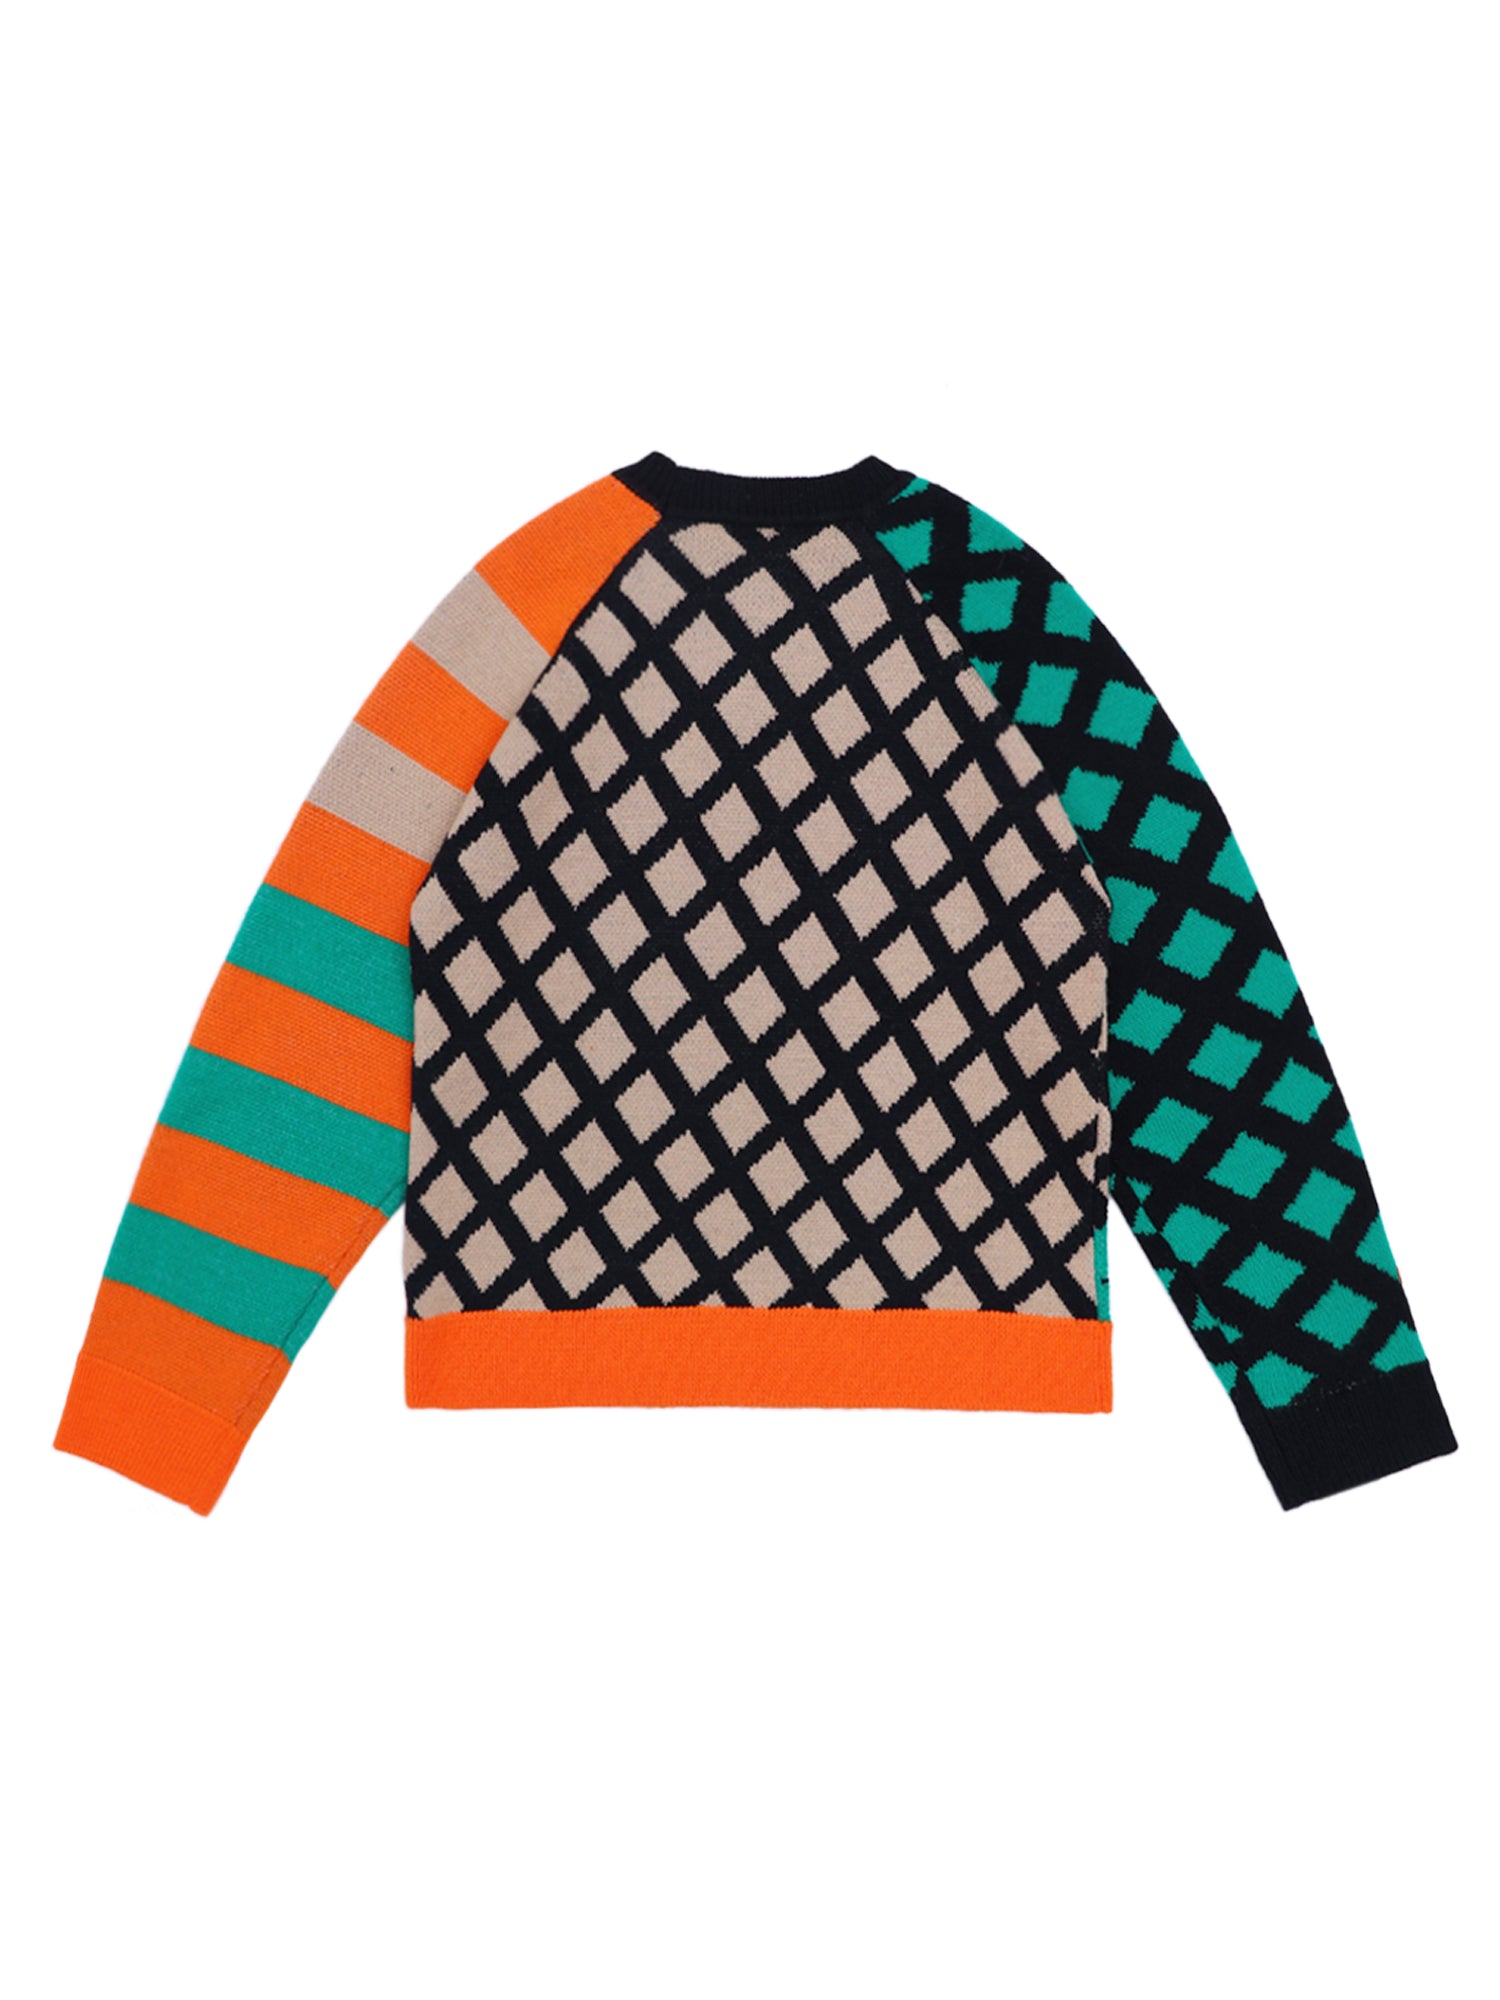 THREE IN ONE PACKAGING GRAPHIC LONG SLEEVE KNIT SWEATER